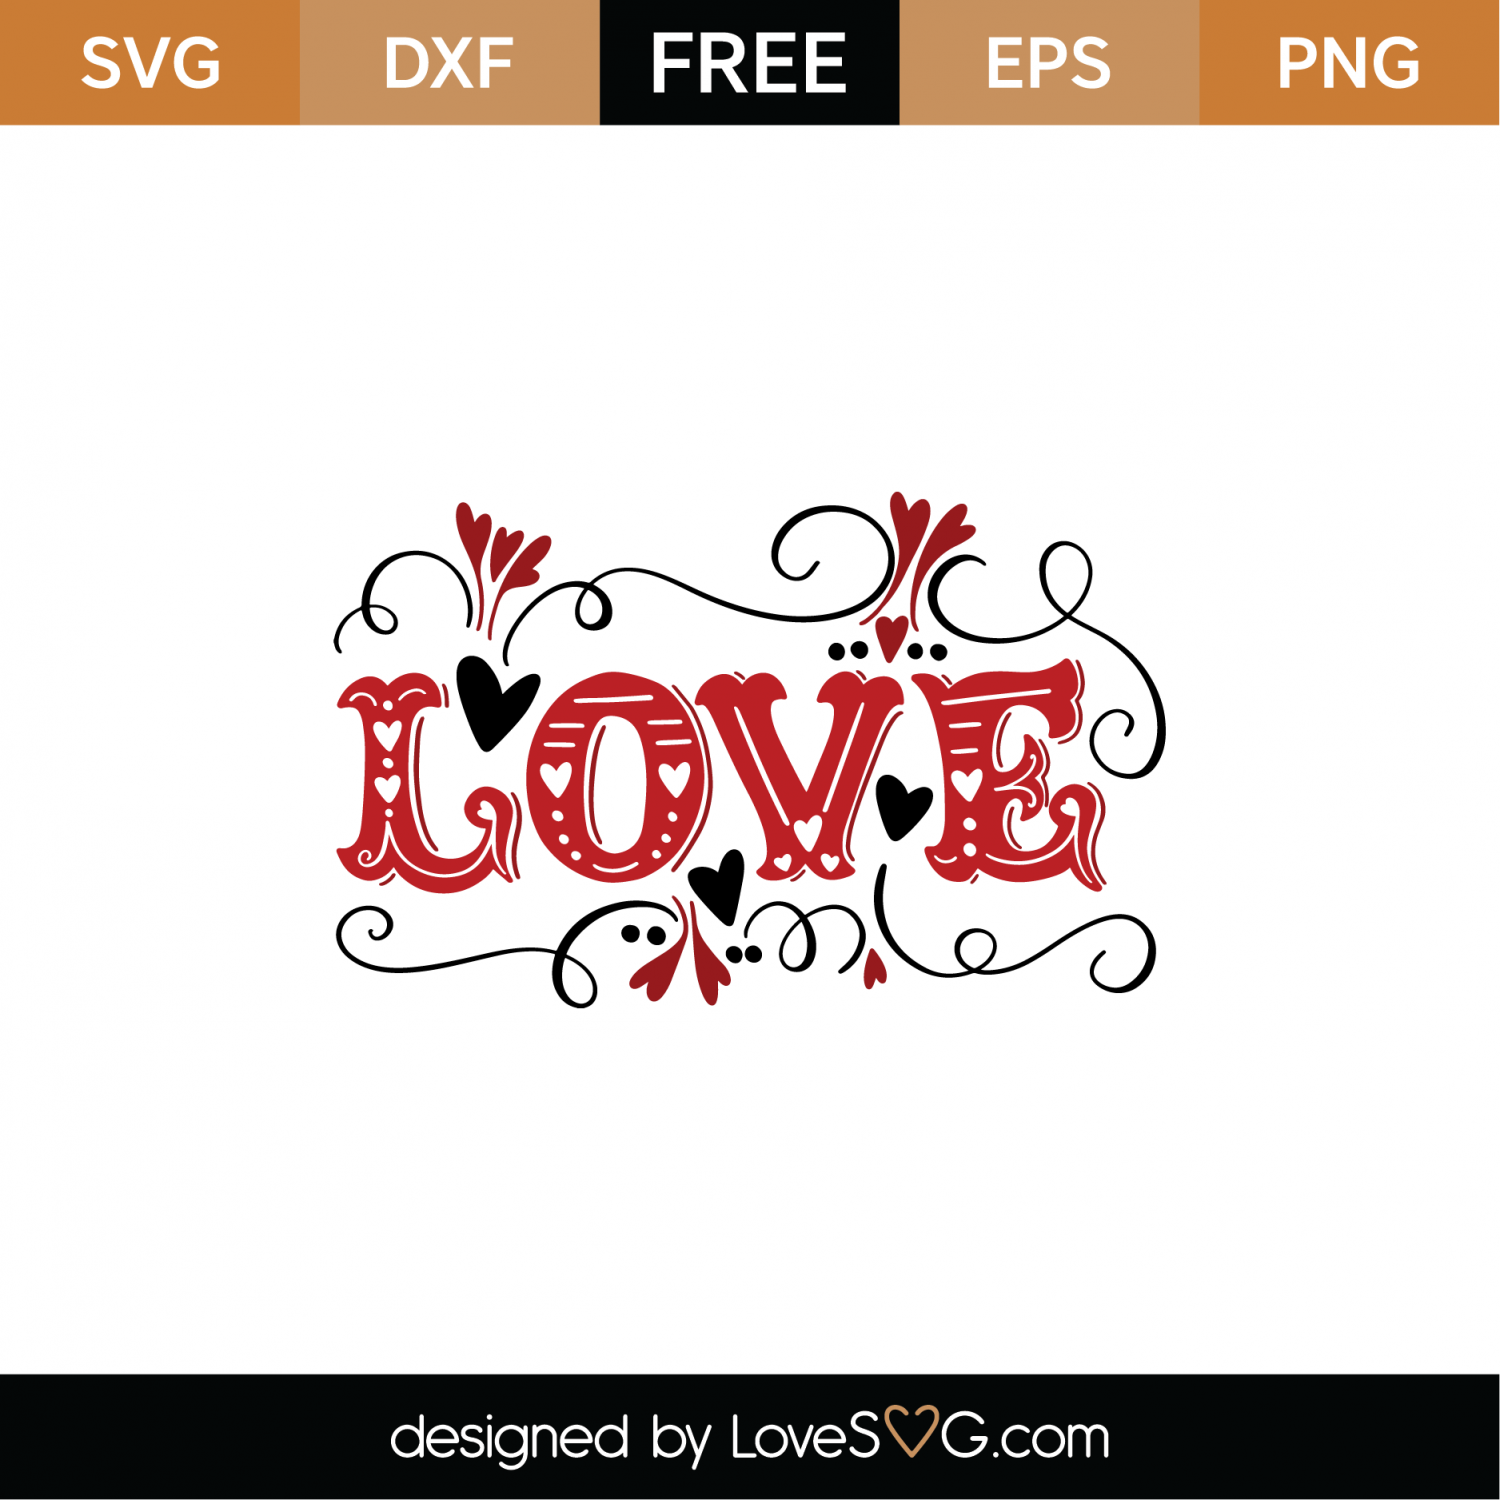 1235+ Love Svg Files for DIY T-shirt, Mug, Decoration and more